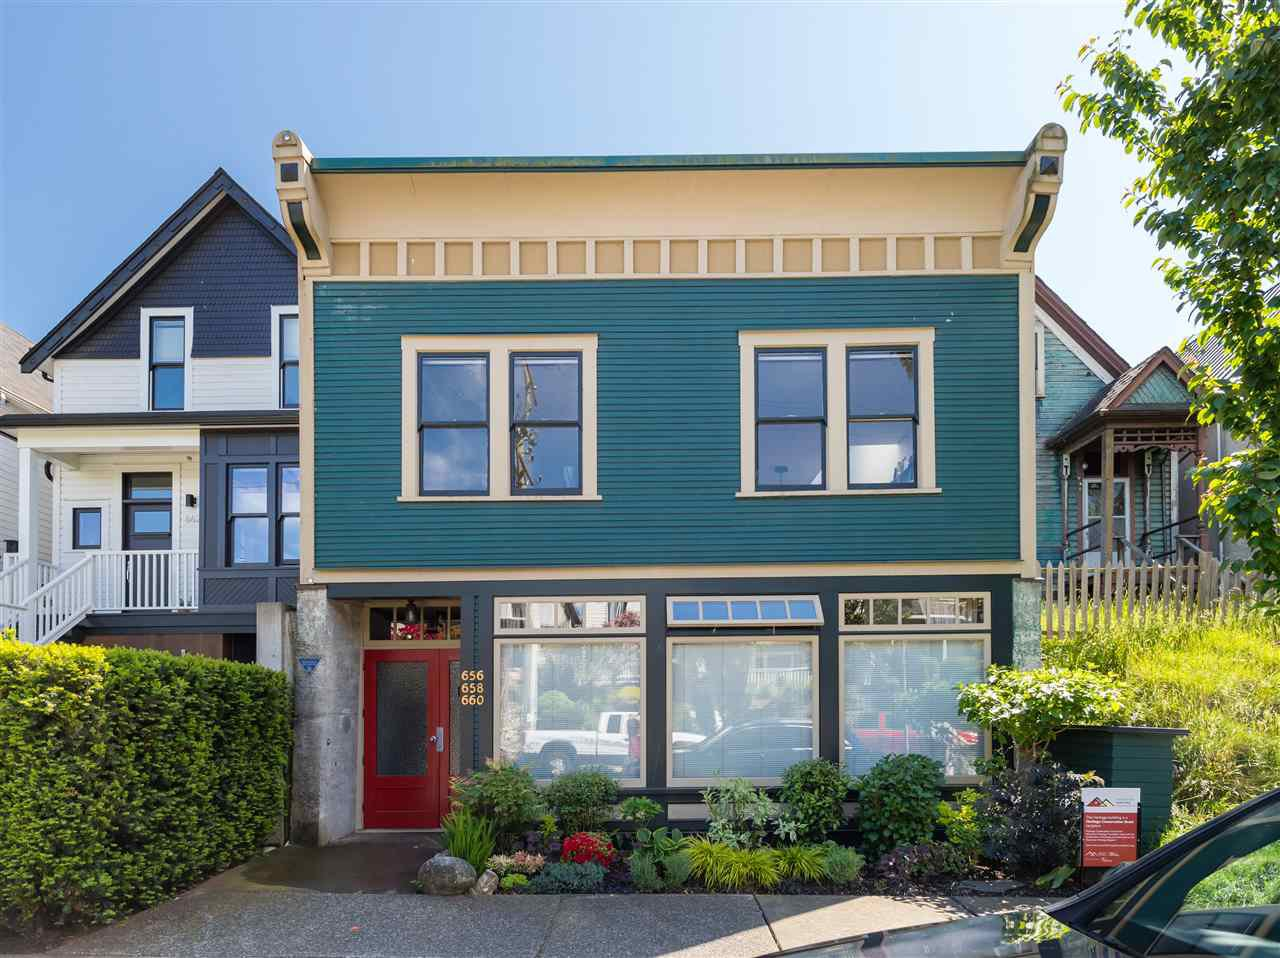 Photo 12: Photos: 660 UNION STREET in Vancouver: Strathcona Townhouse for sale (Vancouver East)  : MLS®# R2457114